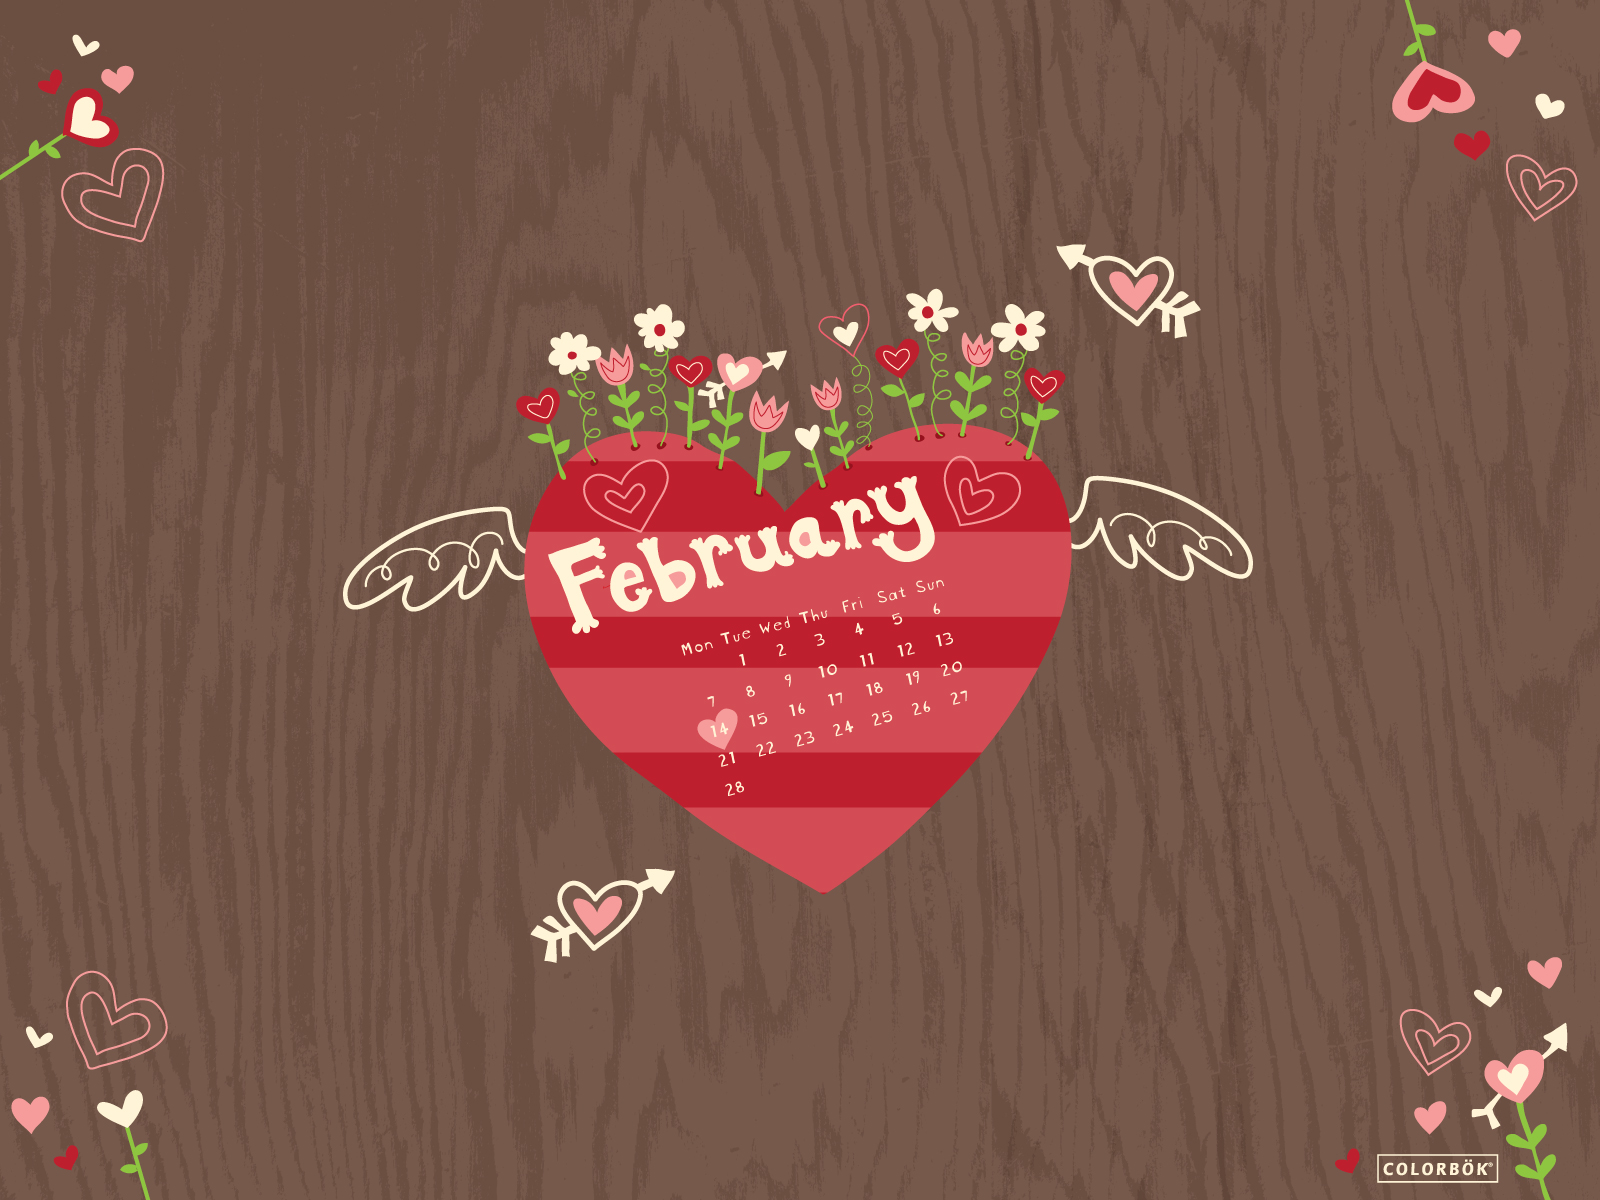 FEBRUARY WALLPAPERS FREE Wallpapers Background images 1600x1200